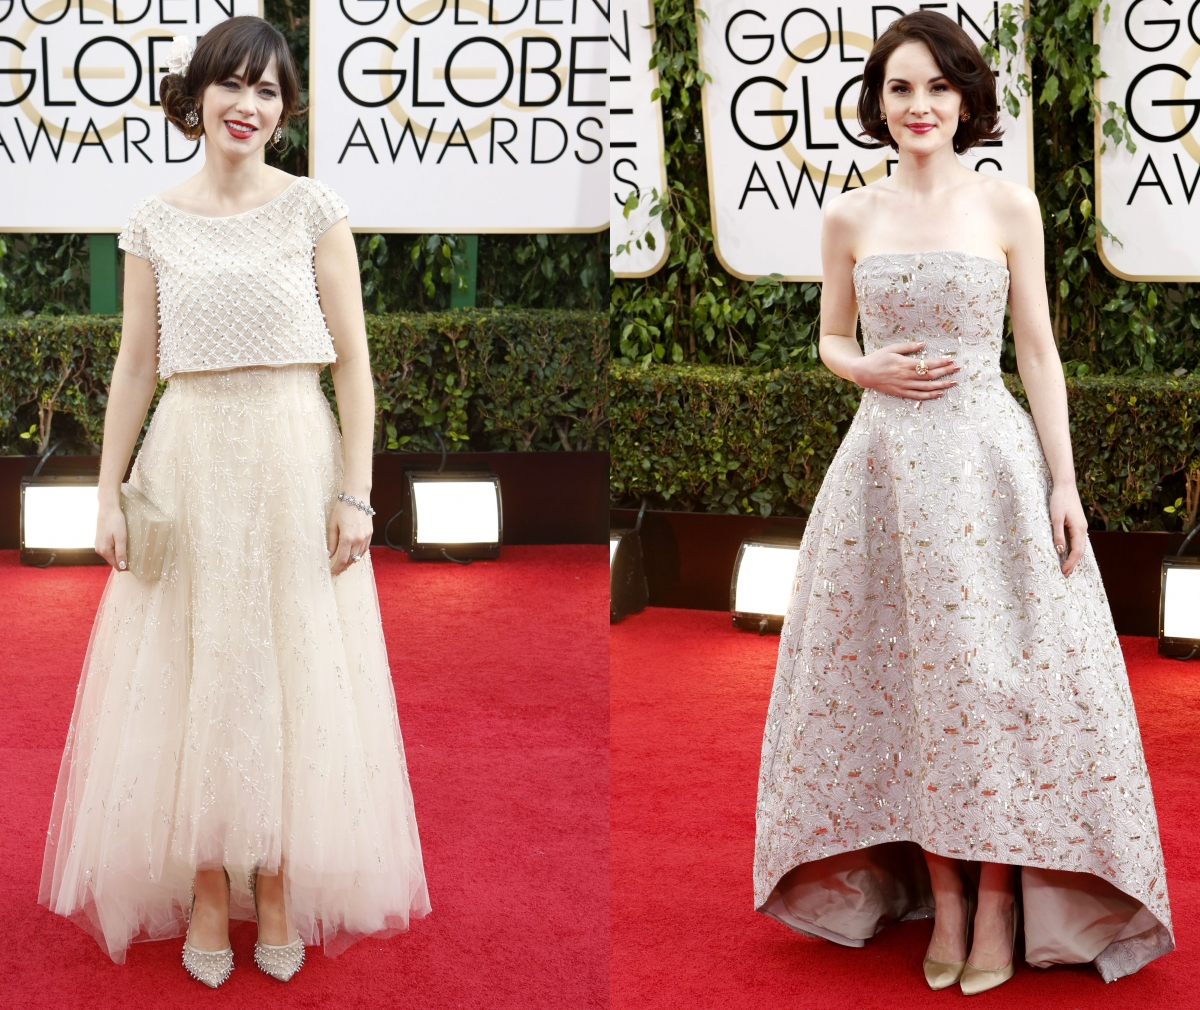 Zooey Deschanel and Michelle Dockery